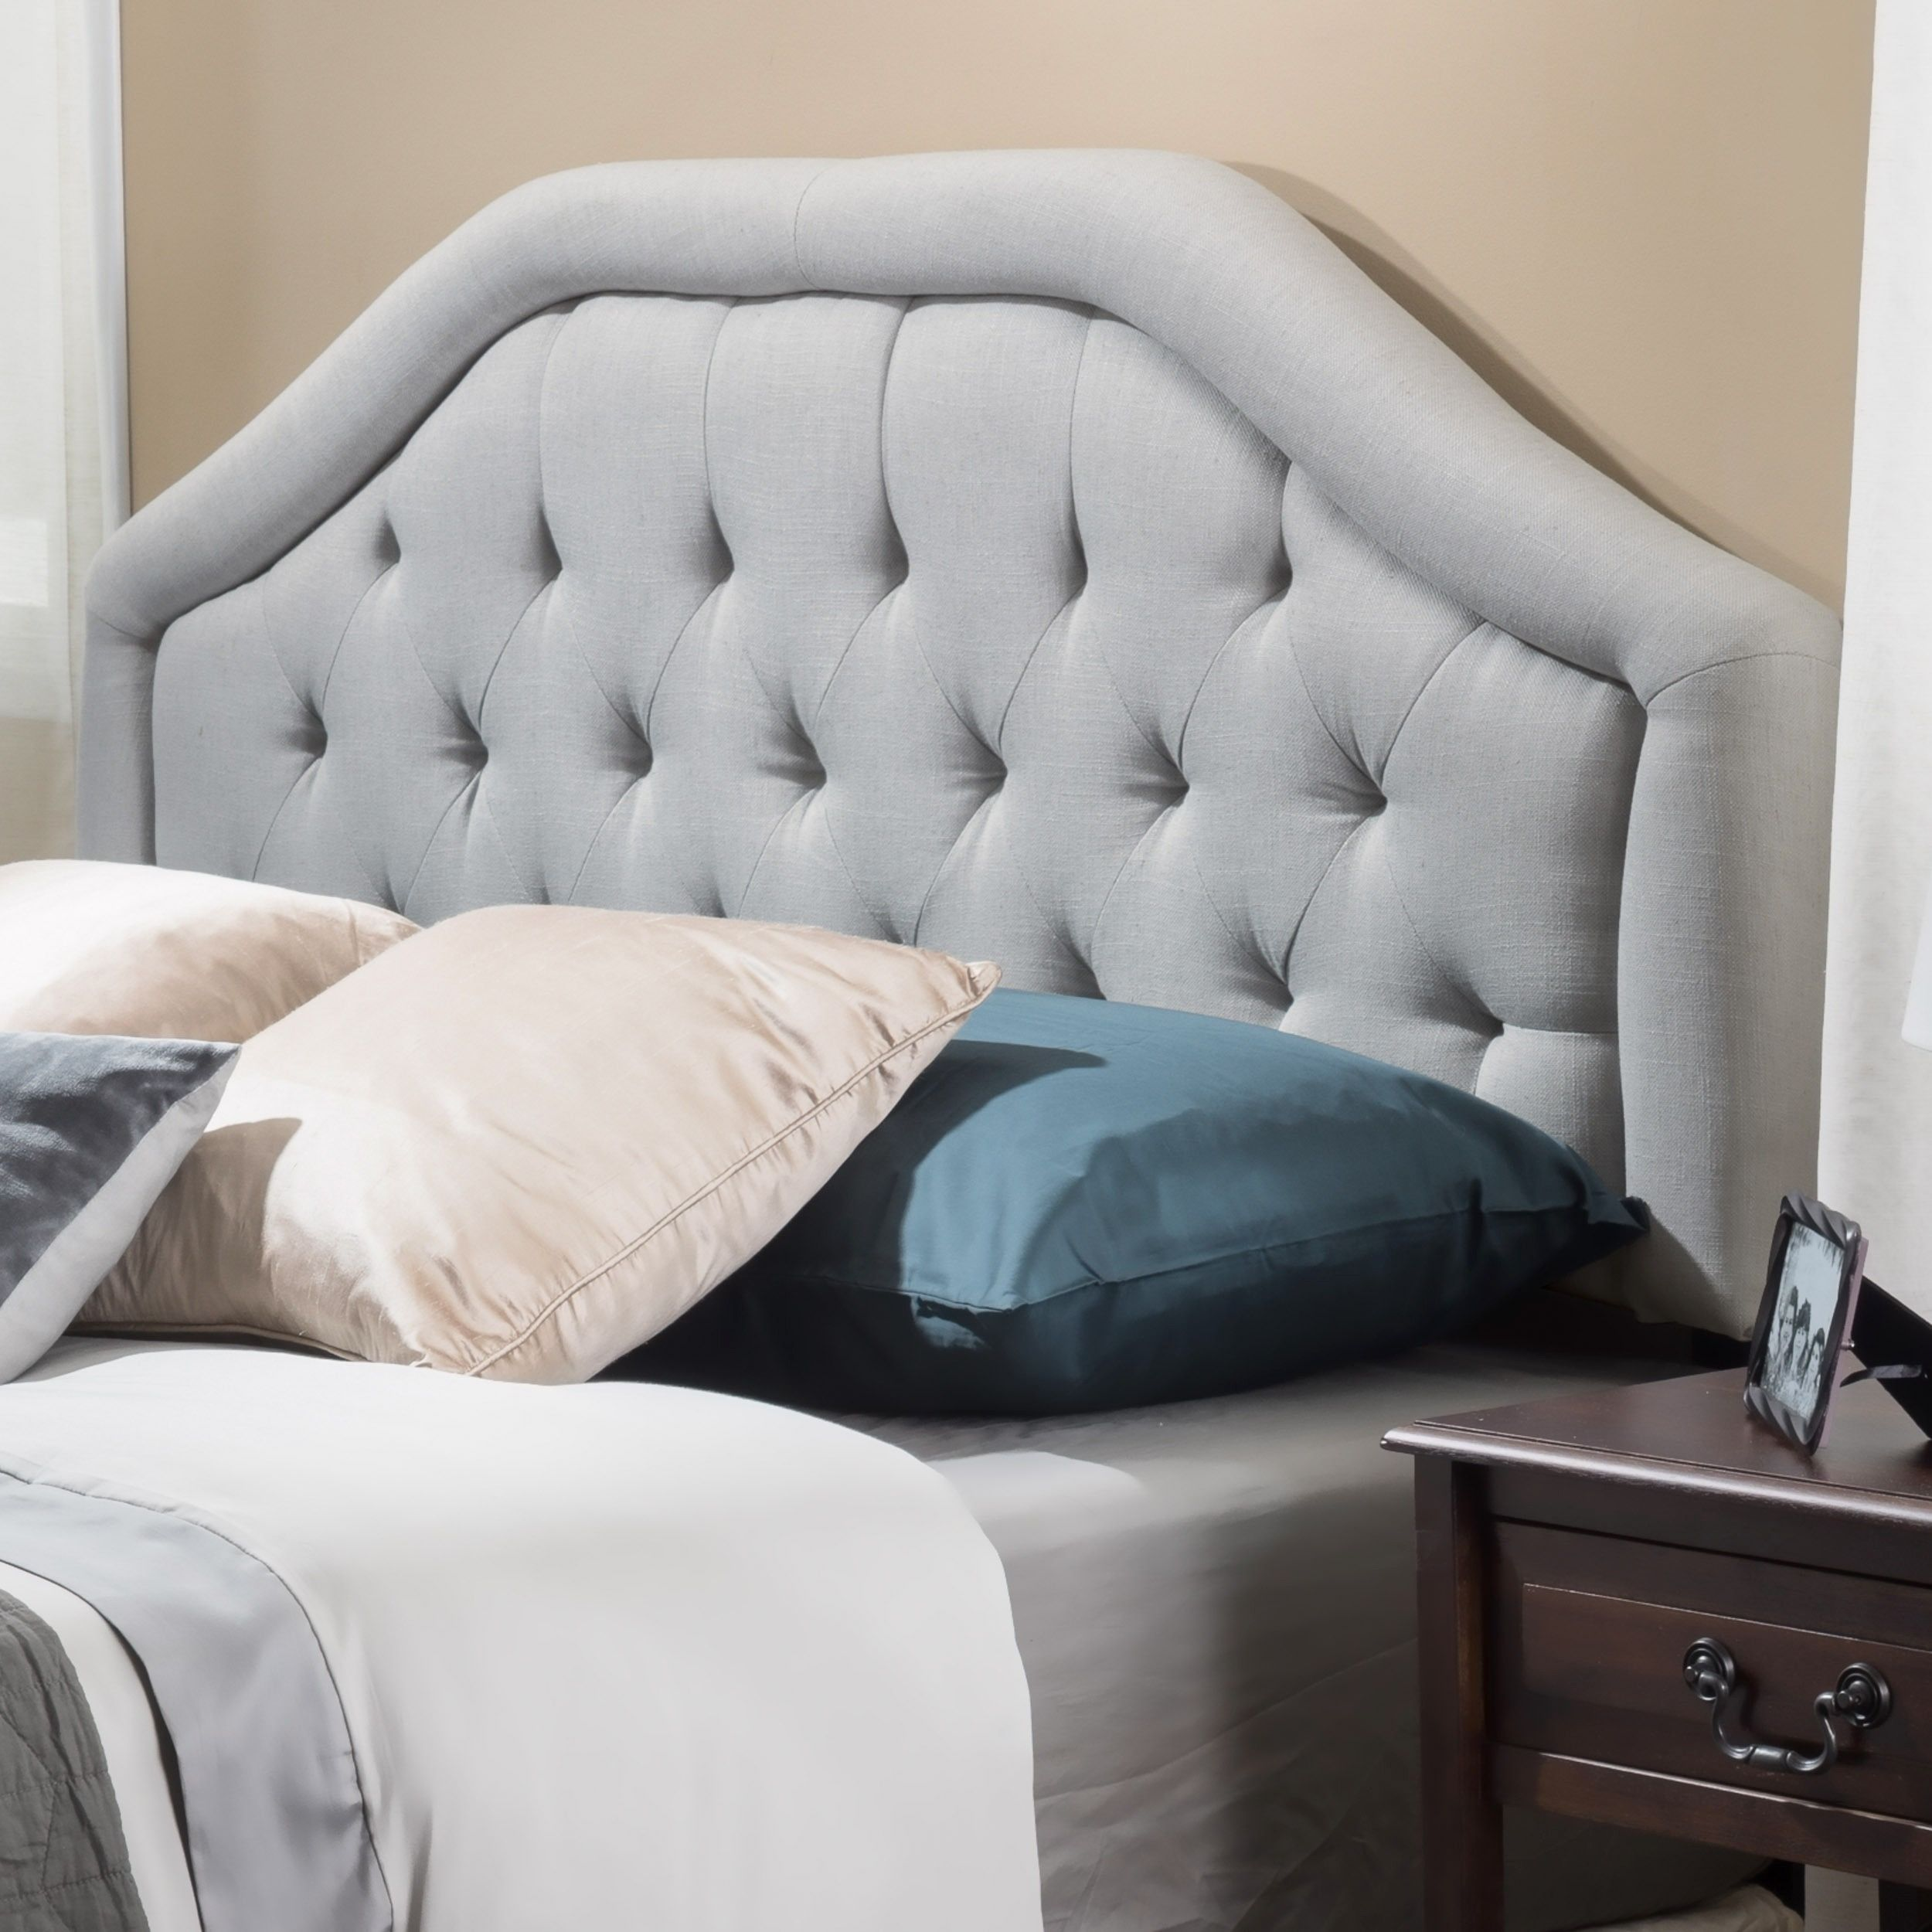 Headboards  Choose a headboard to match your personal style  whether     Angelica Adjustable Full  Queen Tufted Fabric Headboard by Christopher  Knight Home  Full Queen   Light Grey Fabric   Size Full   Queen